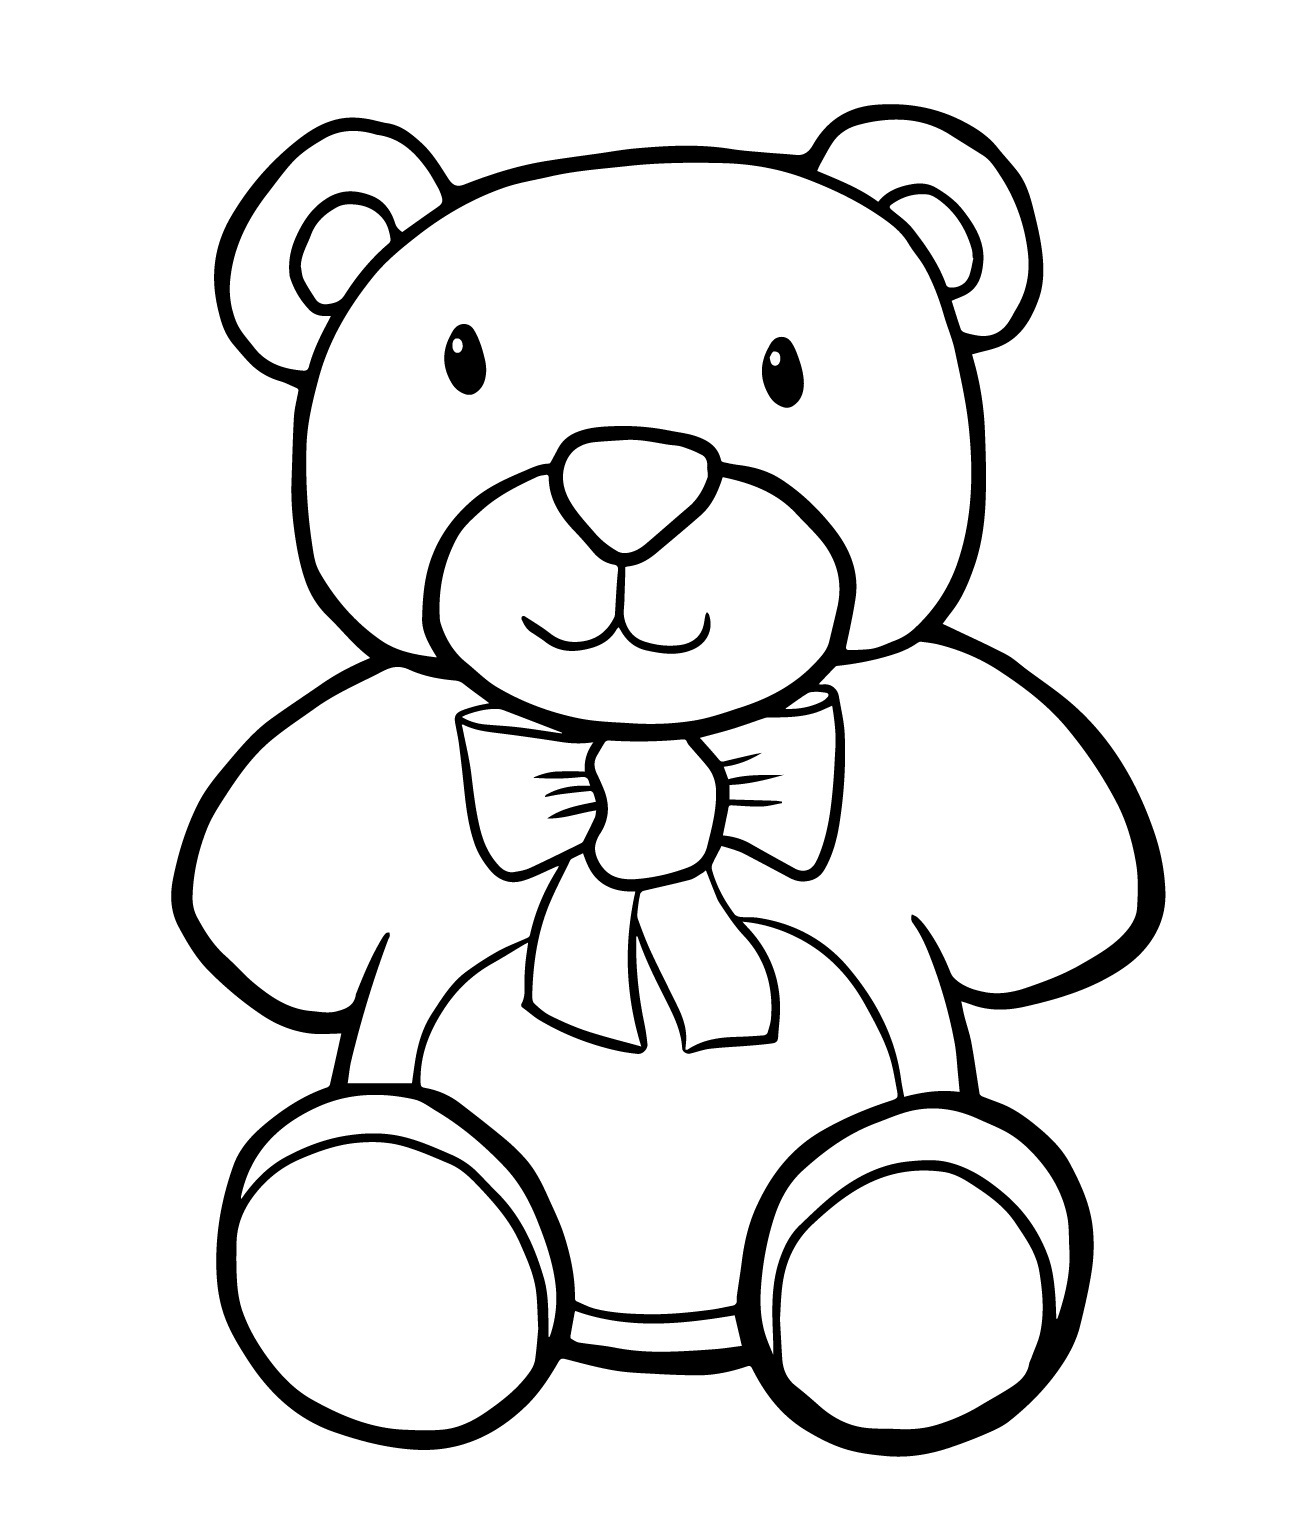 teddy bear colouring picture free printable teddy bear coloring pages for kids bear picture colouring teddy